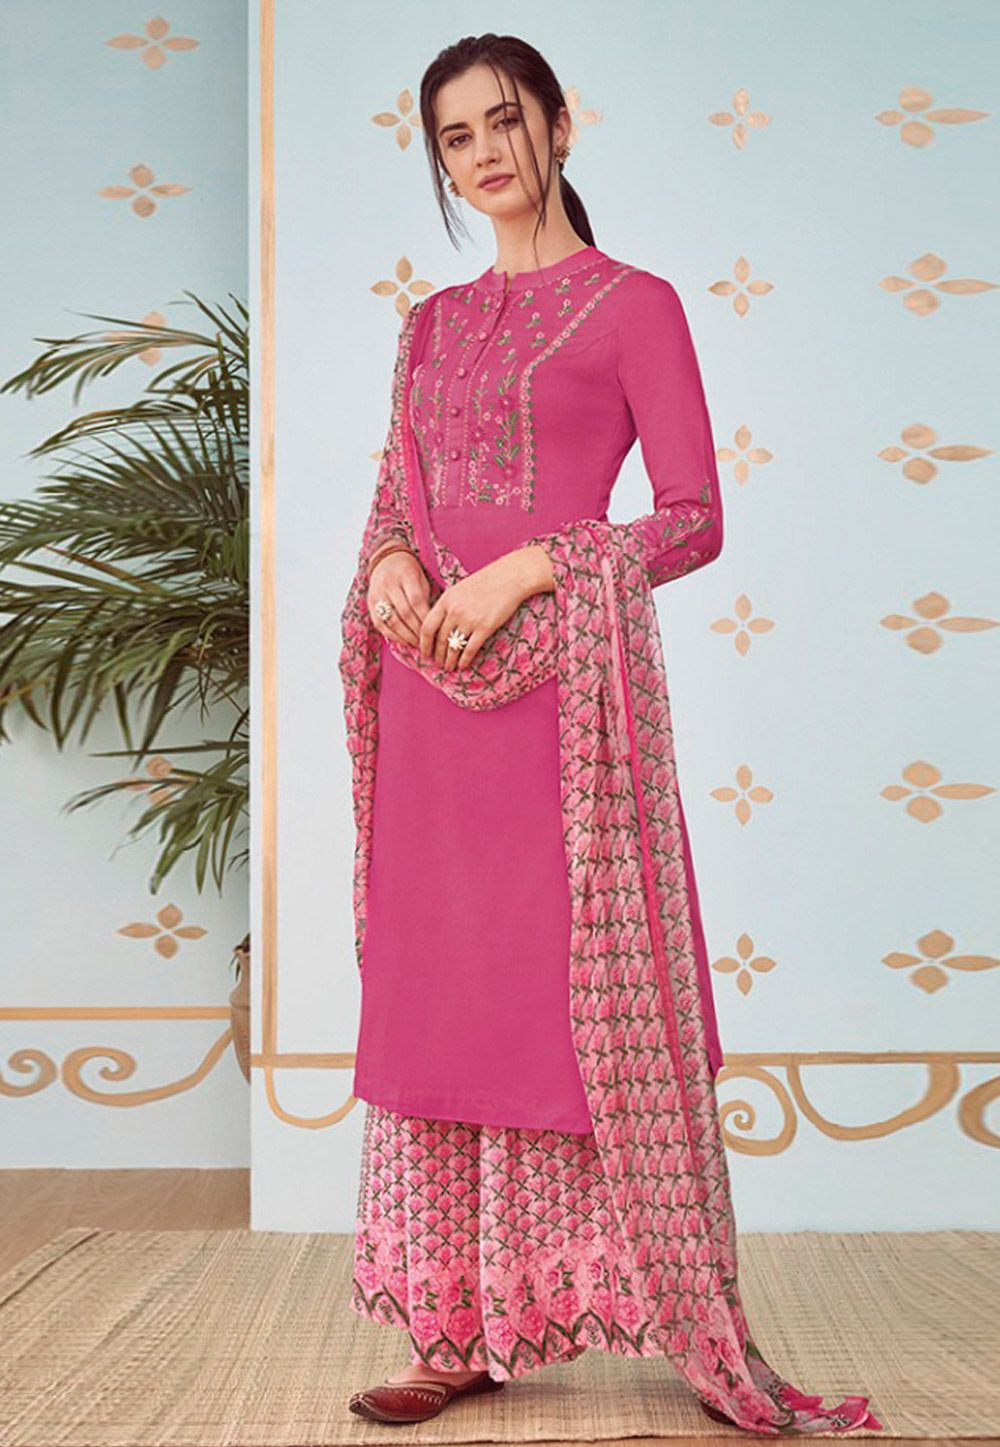 352912dc4 Buy Pink Cotton Palazzo Suit 160584 online at lowest price from huge  collection of salwar kameez at Indianclothstore.com.